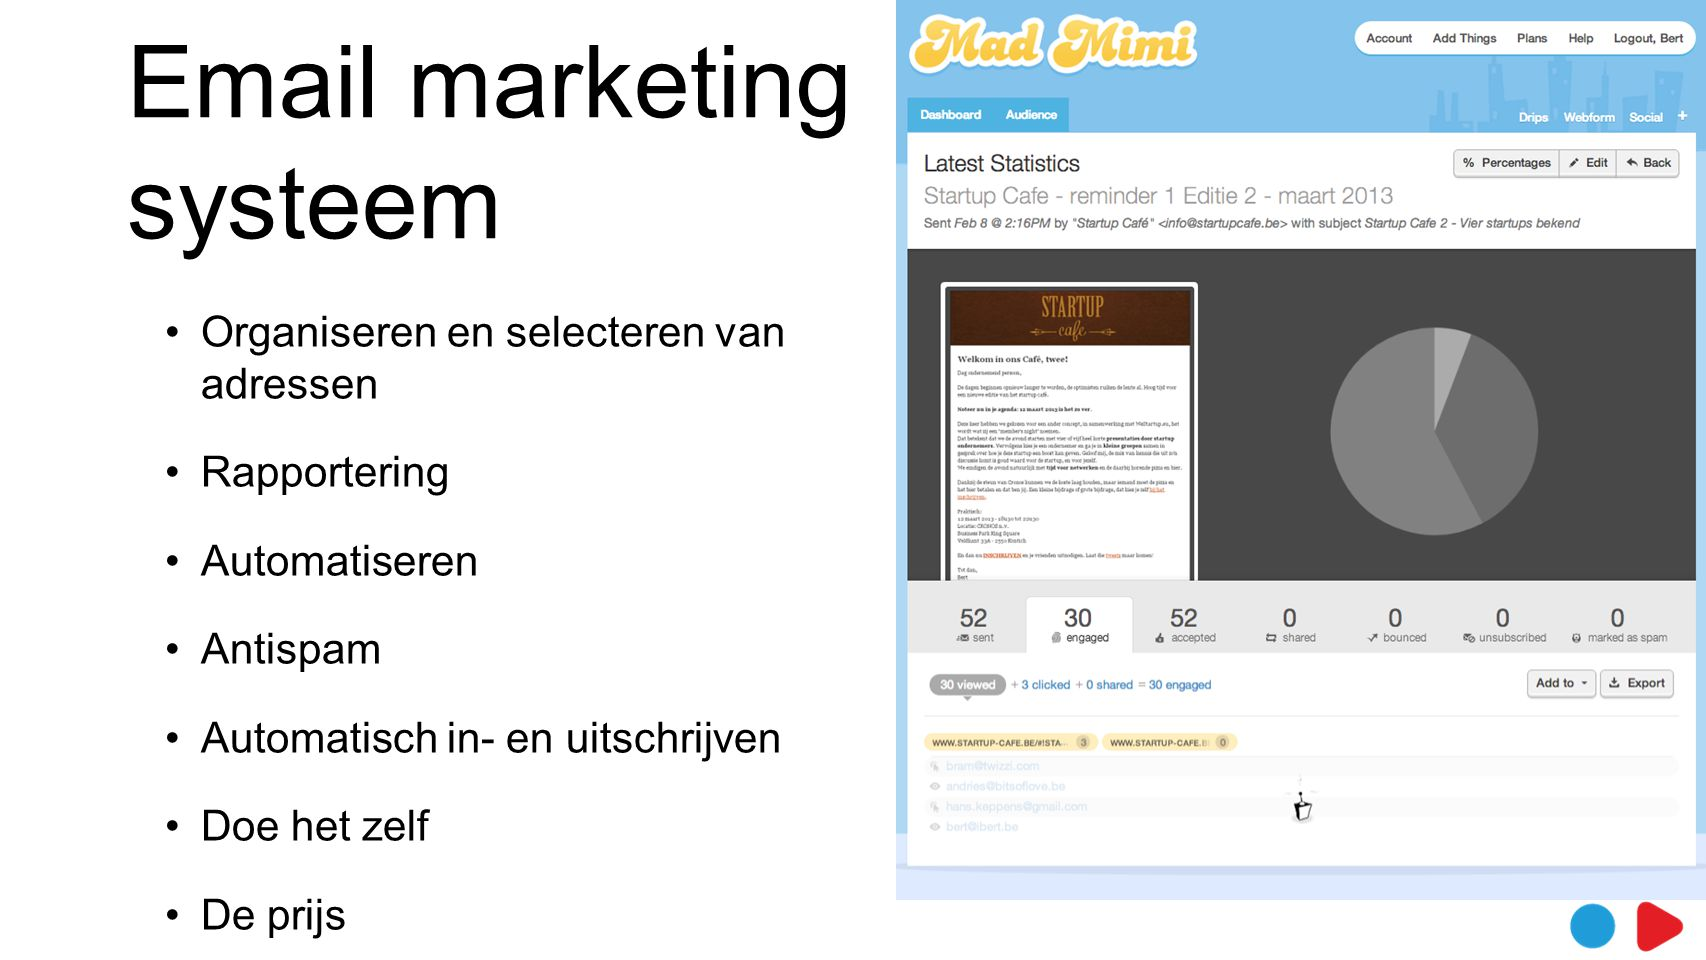 Email marketing systeem